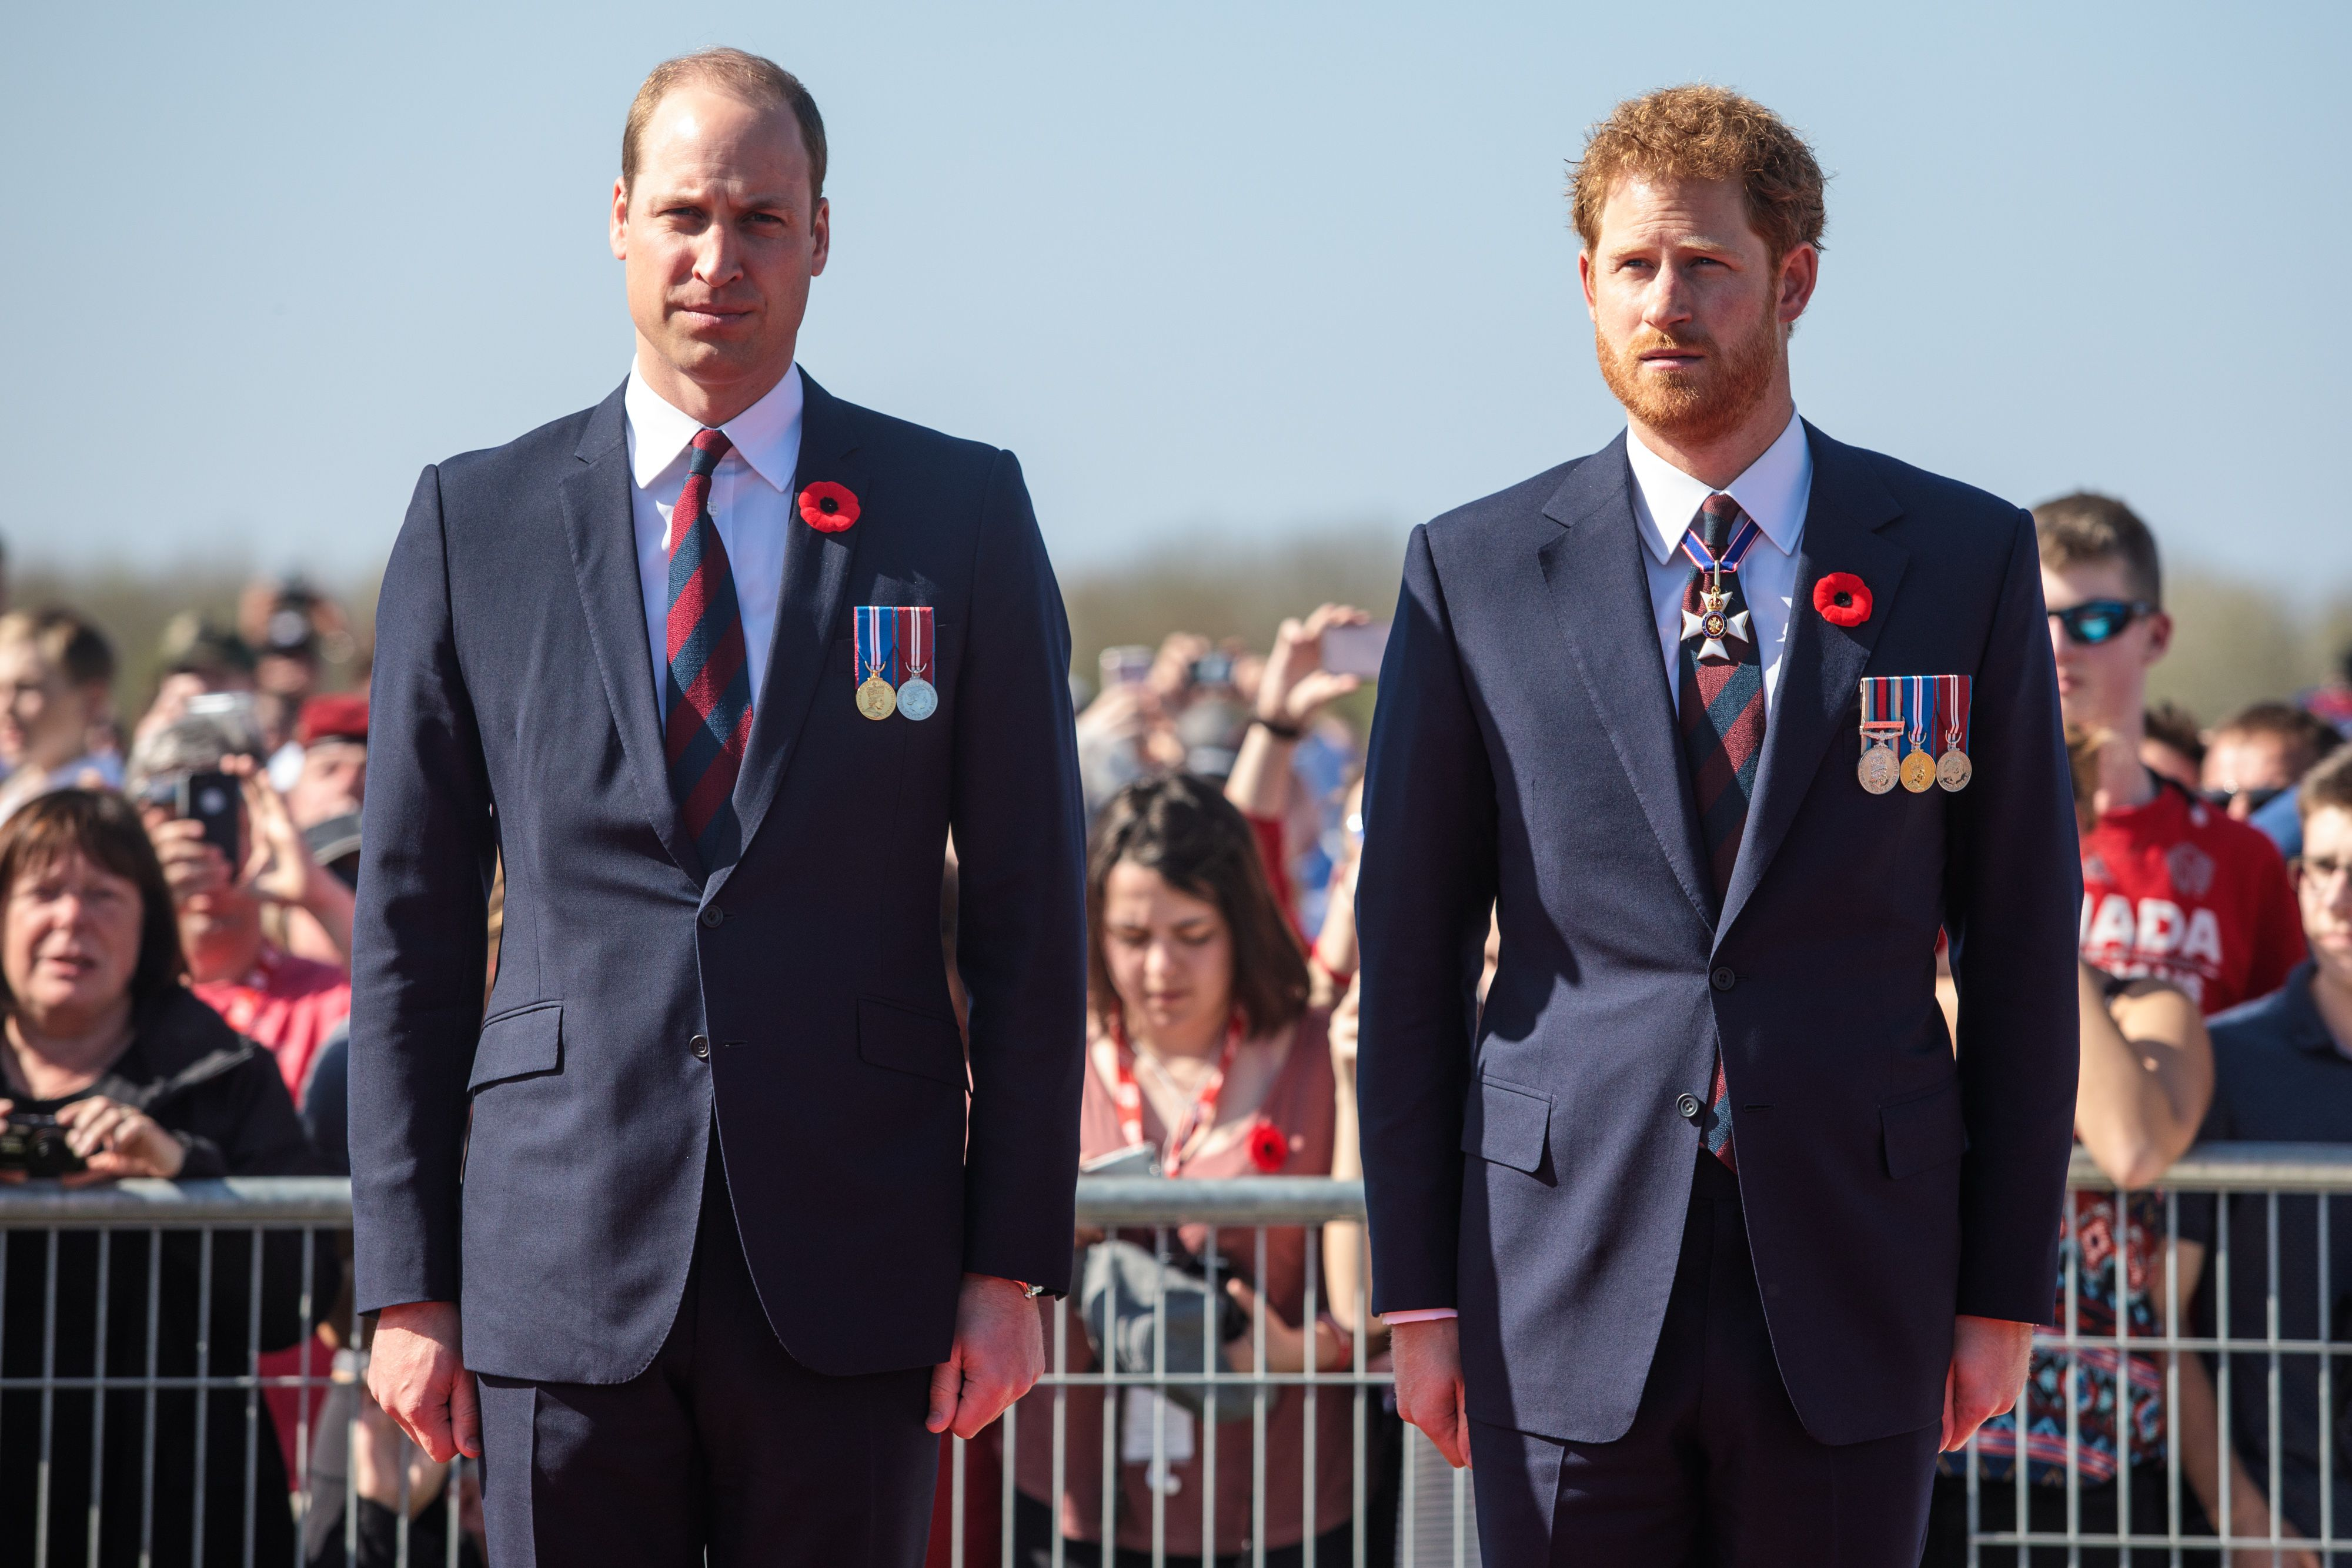 Prince William and Prince Harry at the Canadian National Vimy Memorial on April 9, 2017 in Vimy, France   Photo: Getty Images